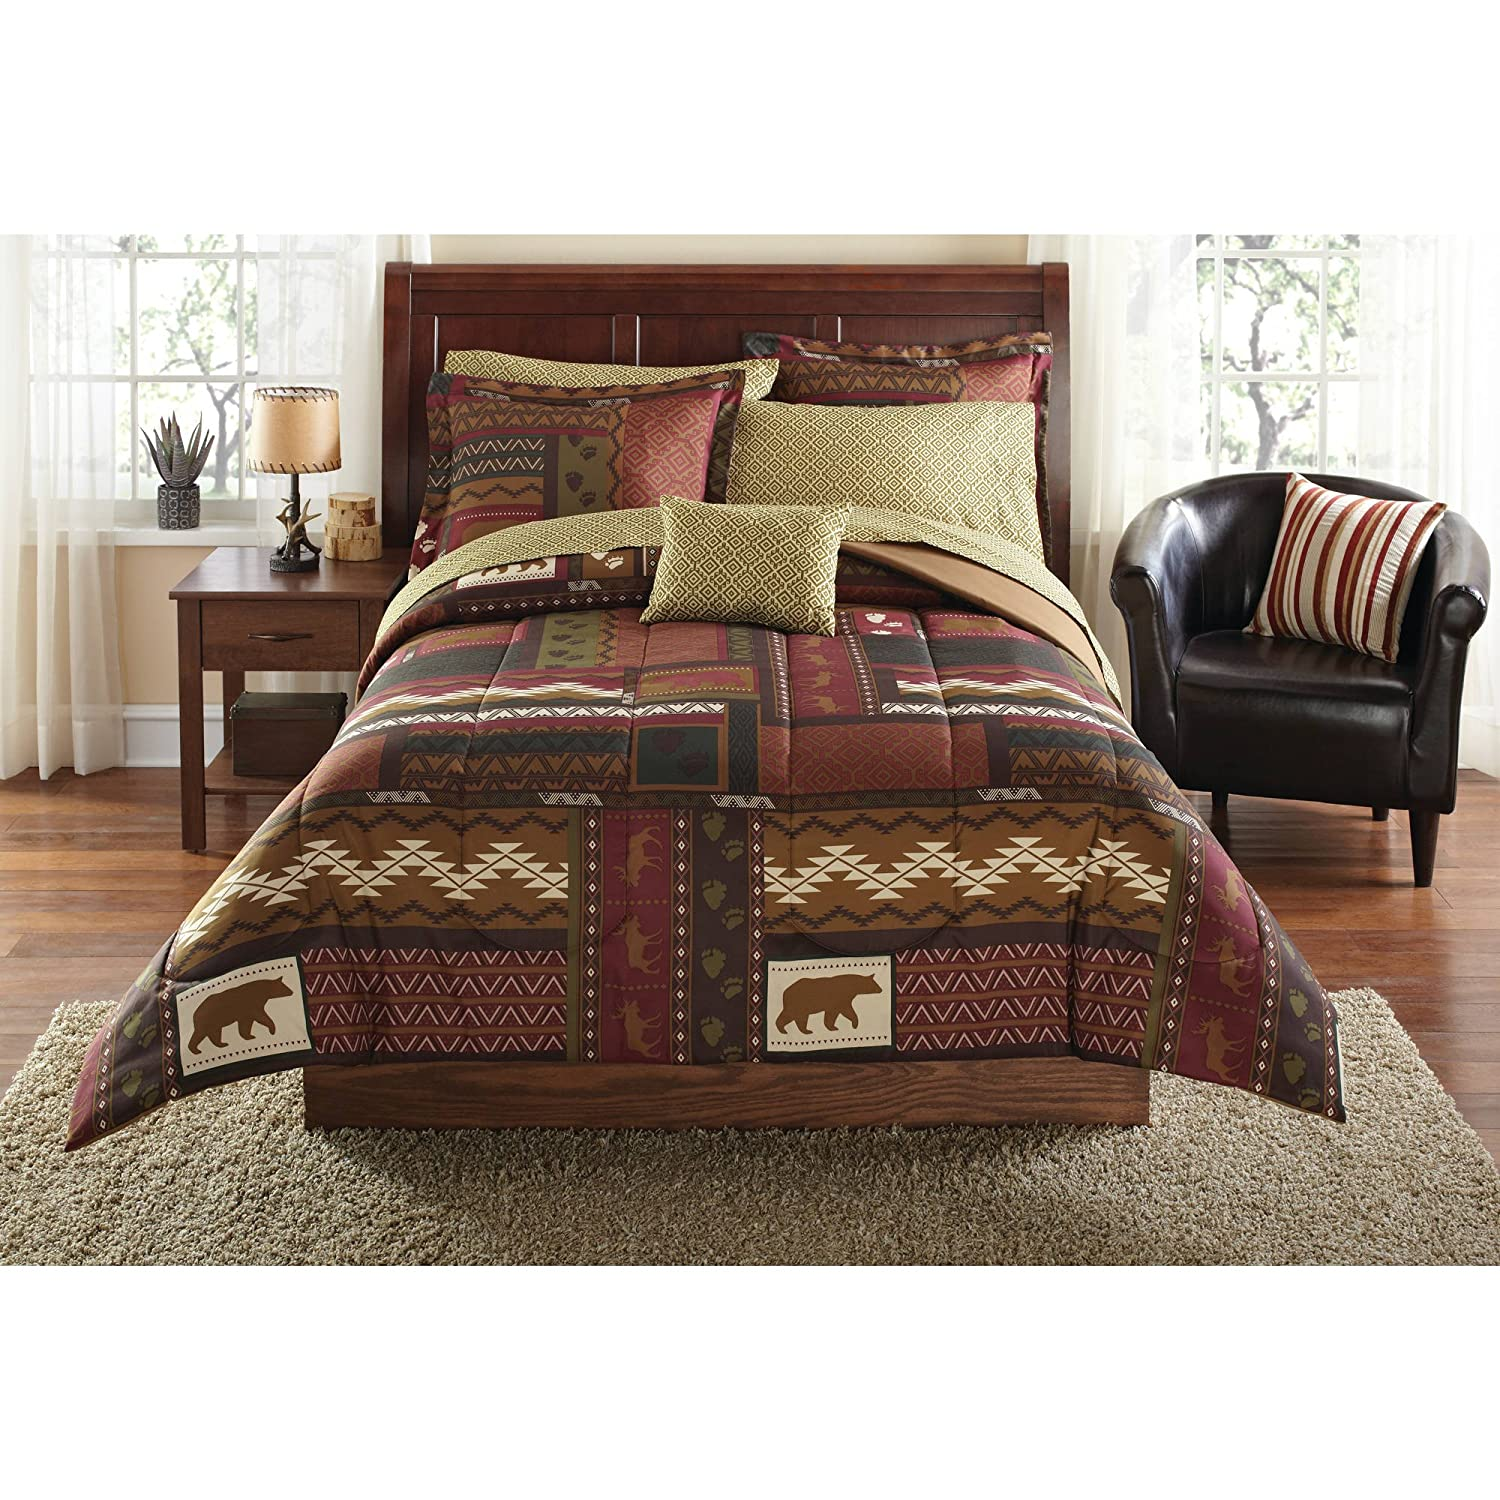 Southwest Cabin Bear King Comforter Set 8 Piece Bed In A Bag